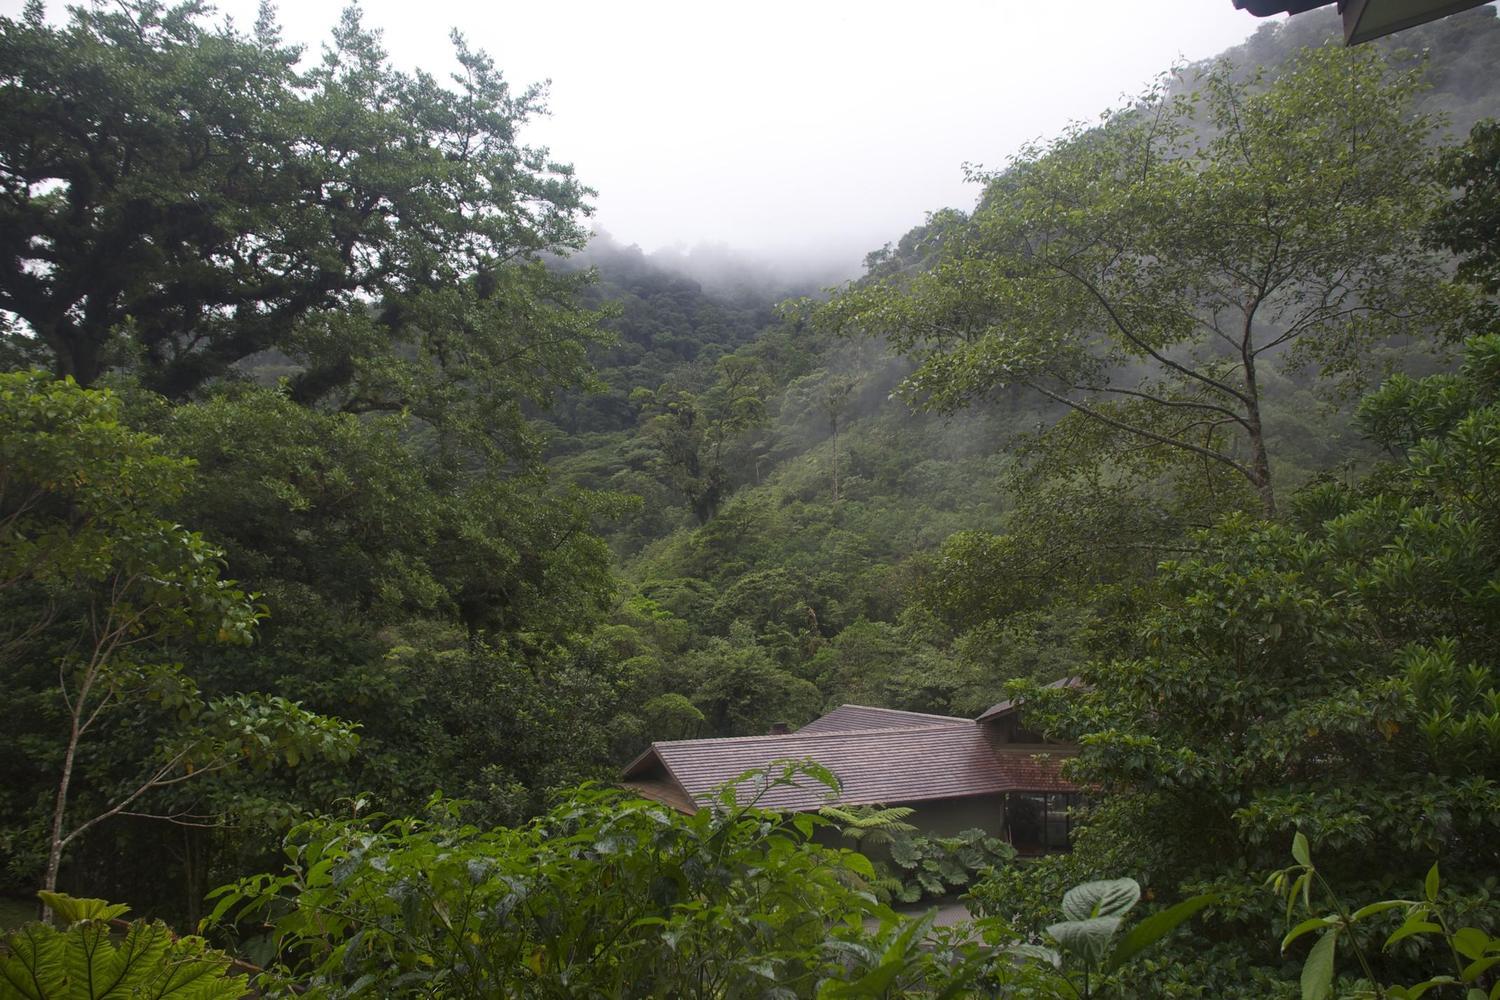 The el Silencio Lodge in the Bajos de Toro cloudforest of Costa Rica